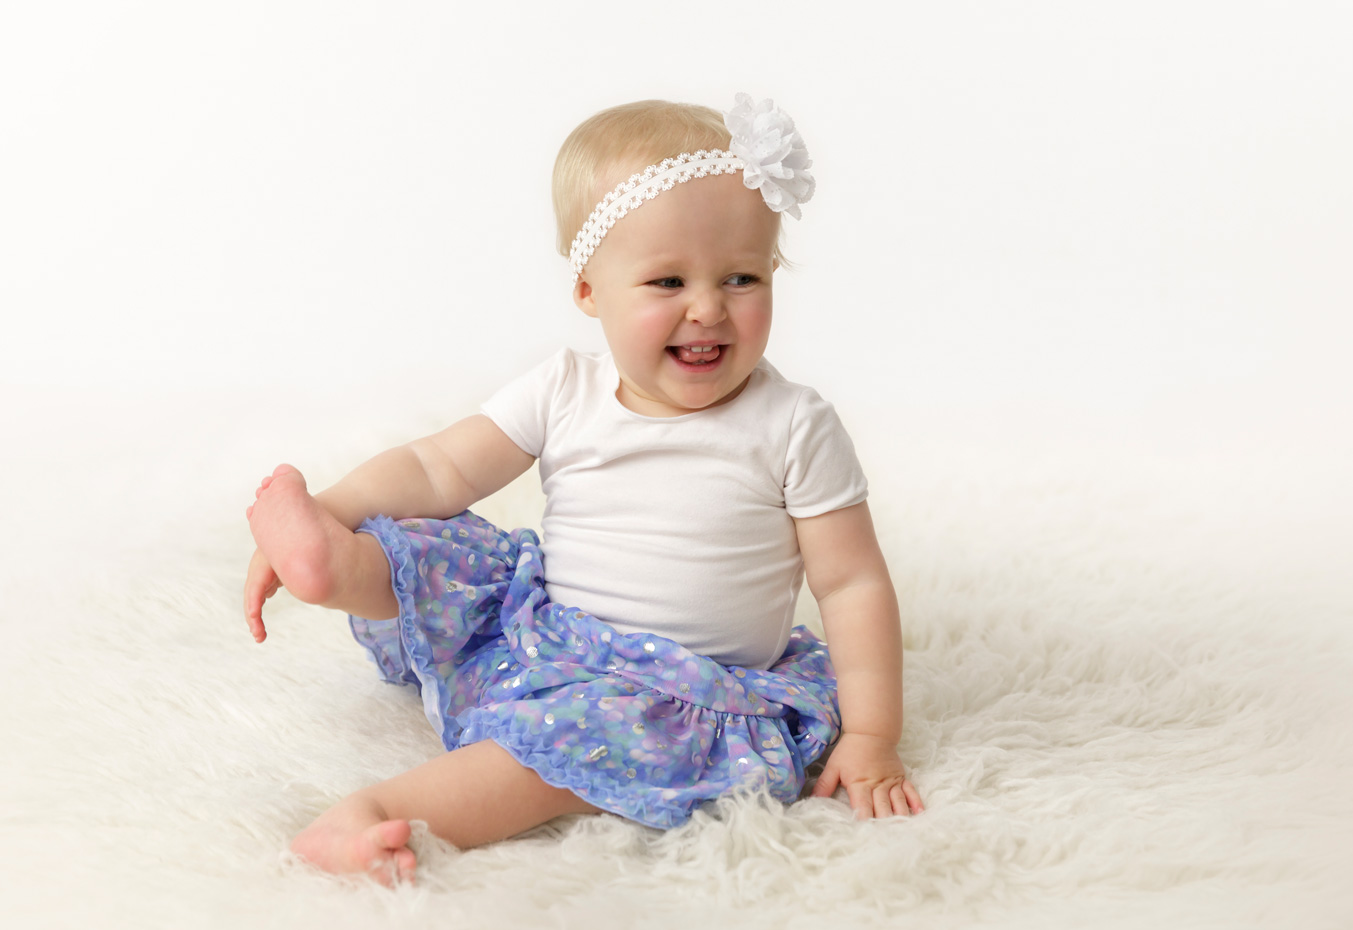 12 month girl playing